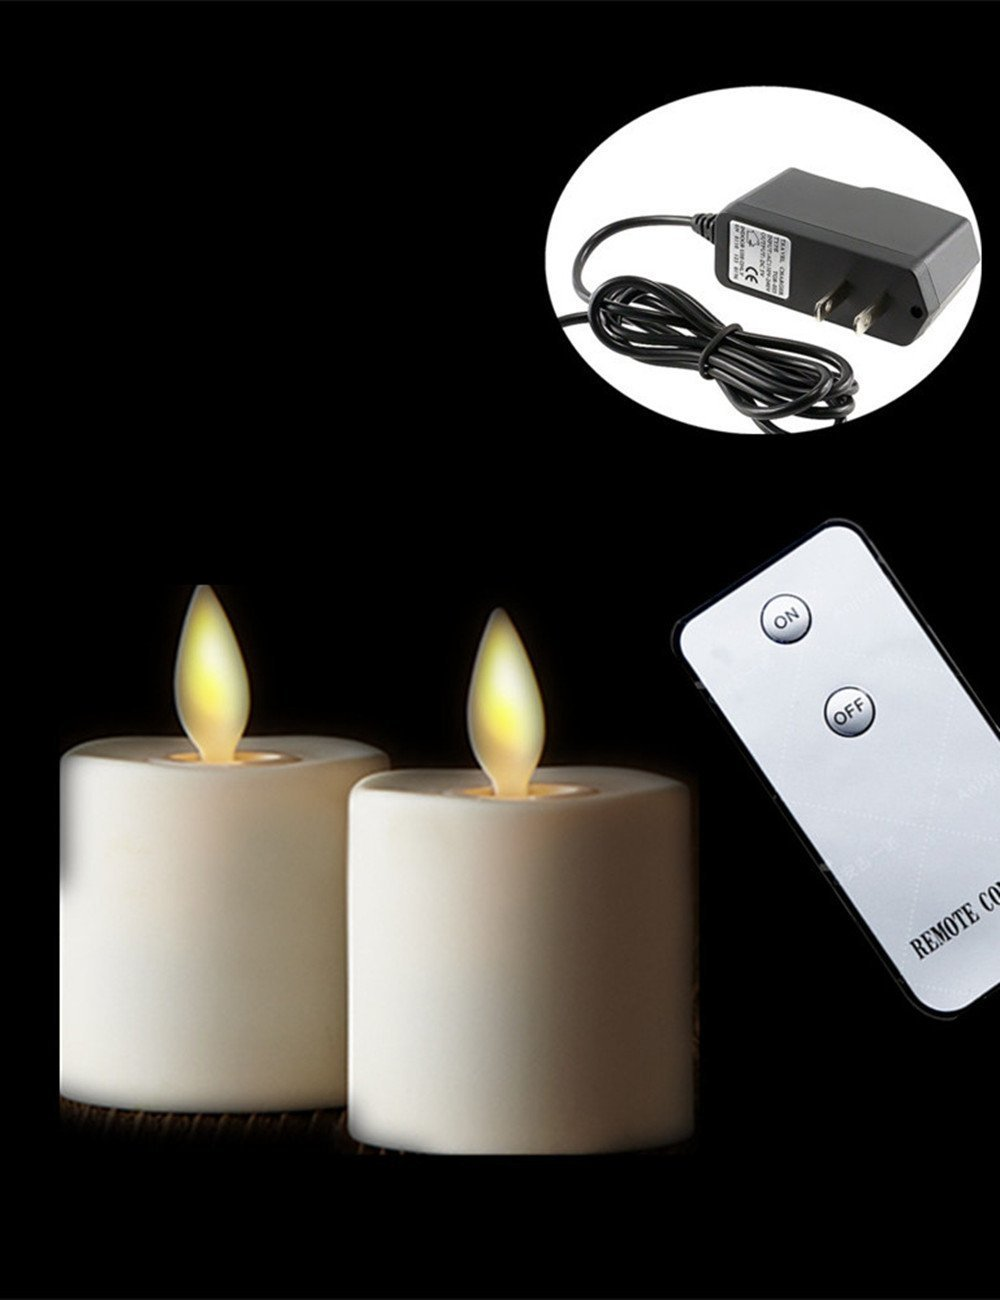 Set of 2 Moving Wick Flameless Rechargeable Tea Light LED Candle with Remote Control (white)